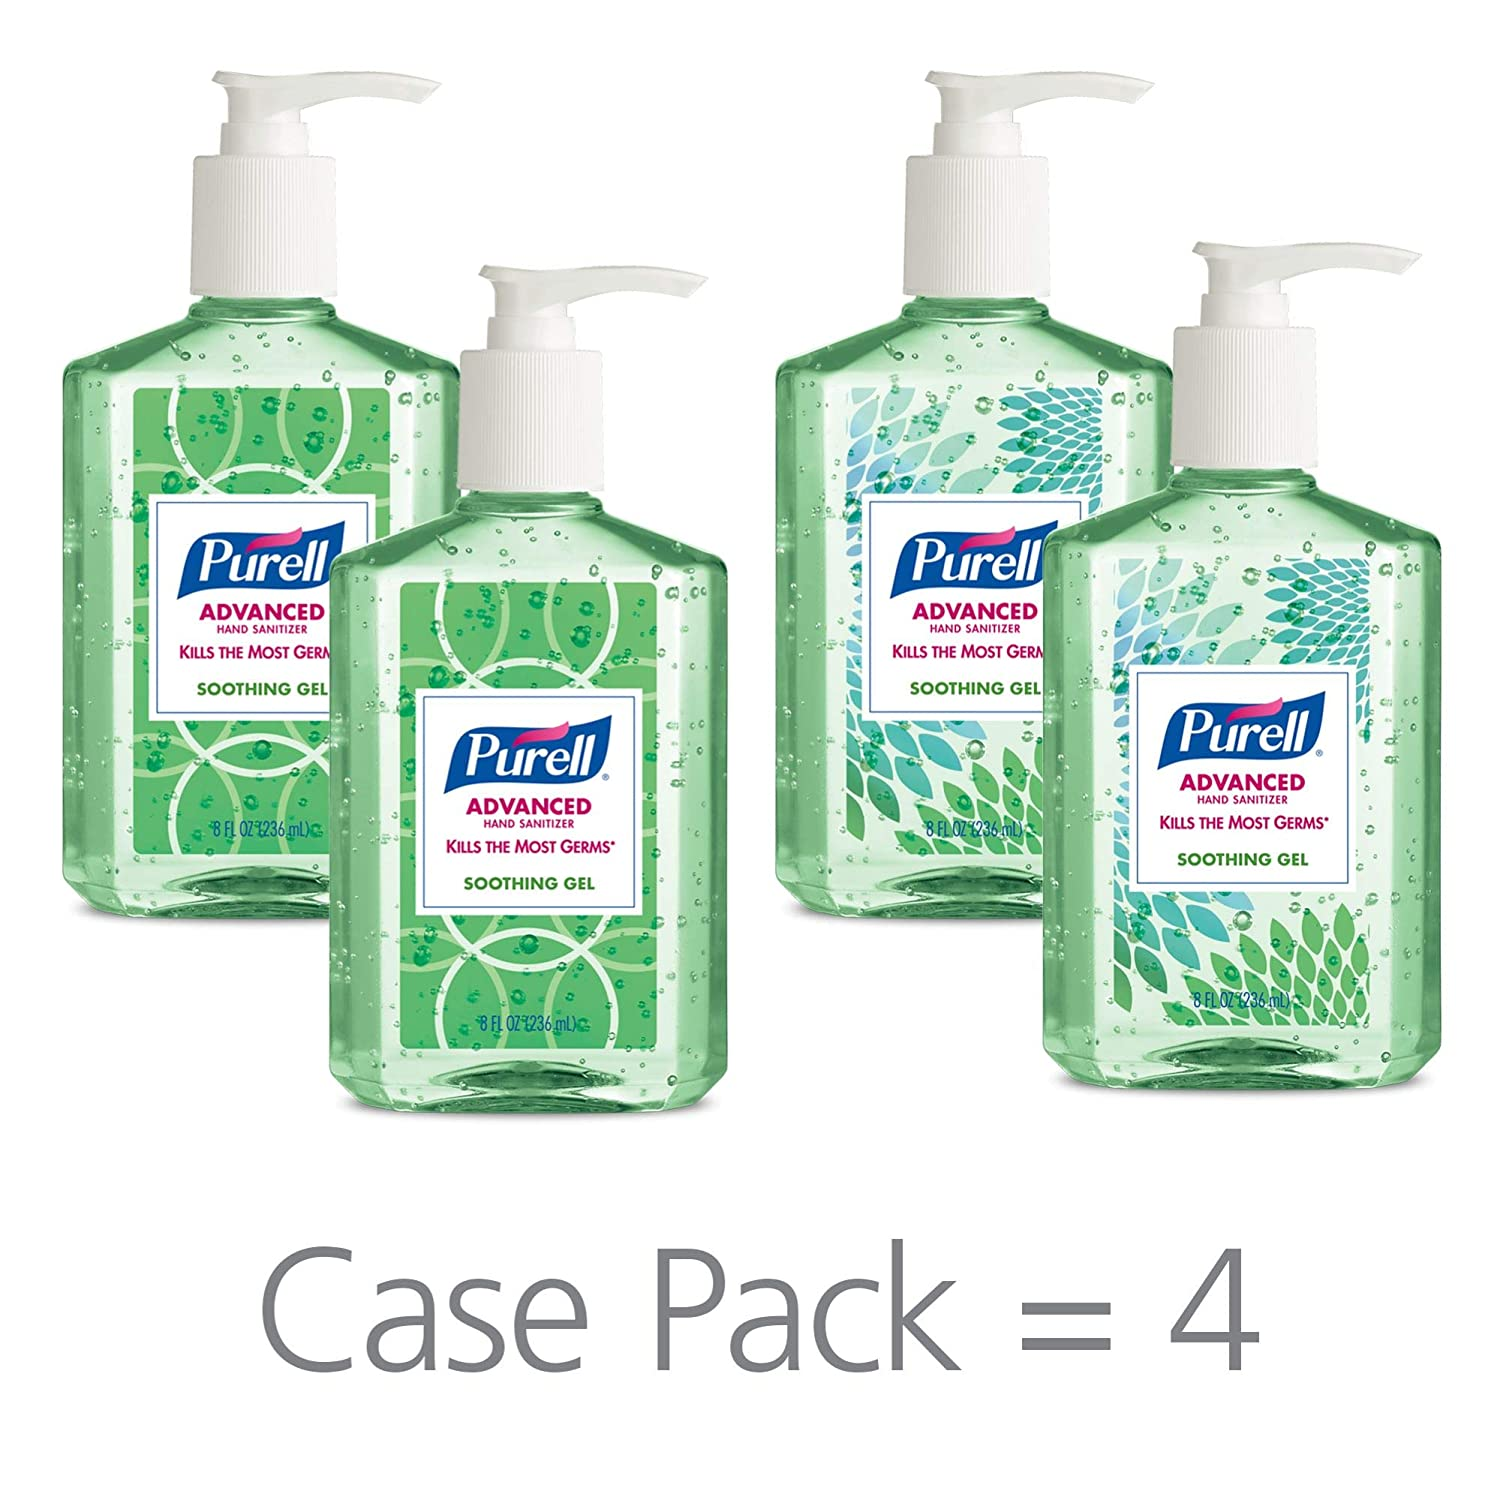 Purell Advanced Hand Sanitizer Aloe Gel Industrial Soap Company